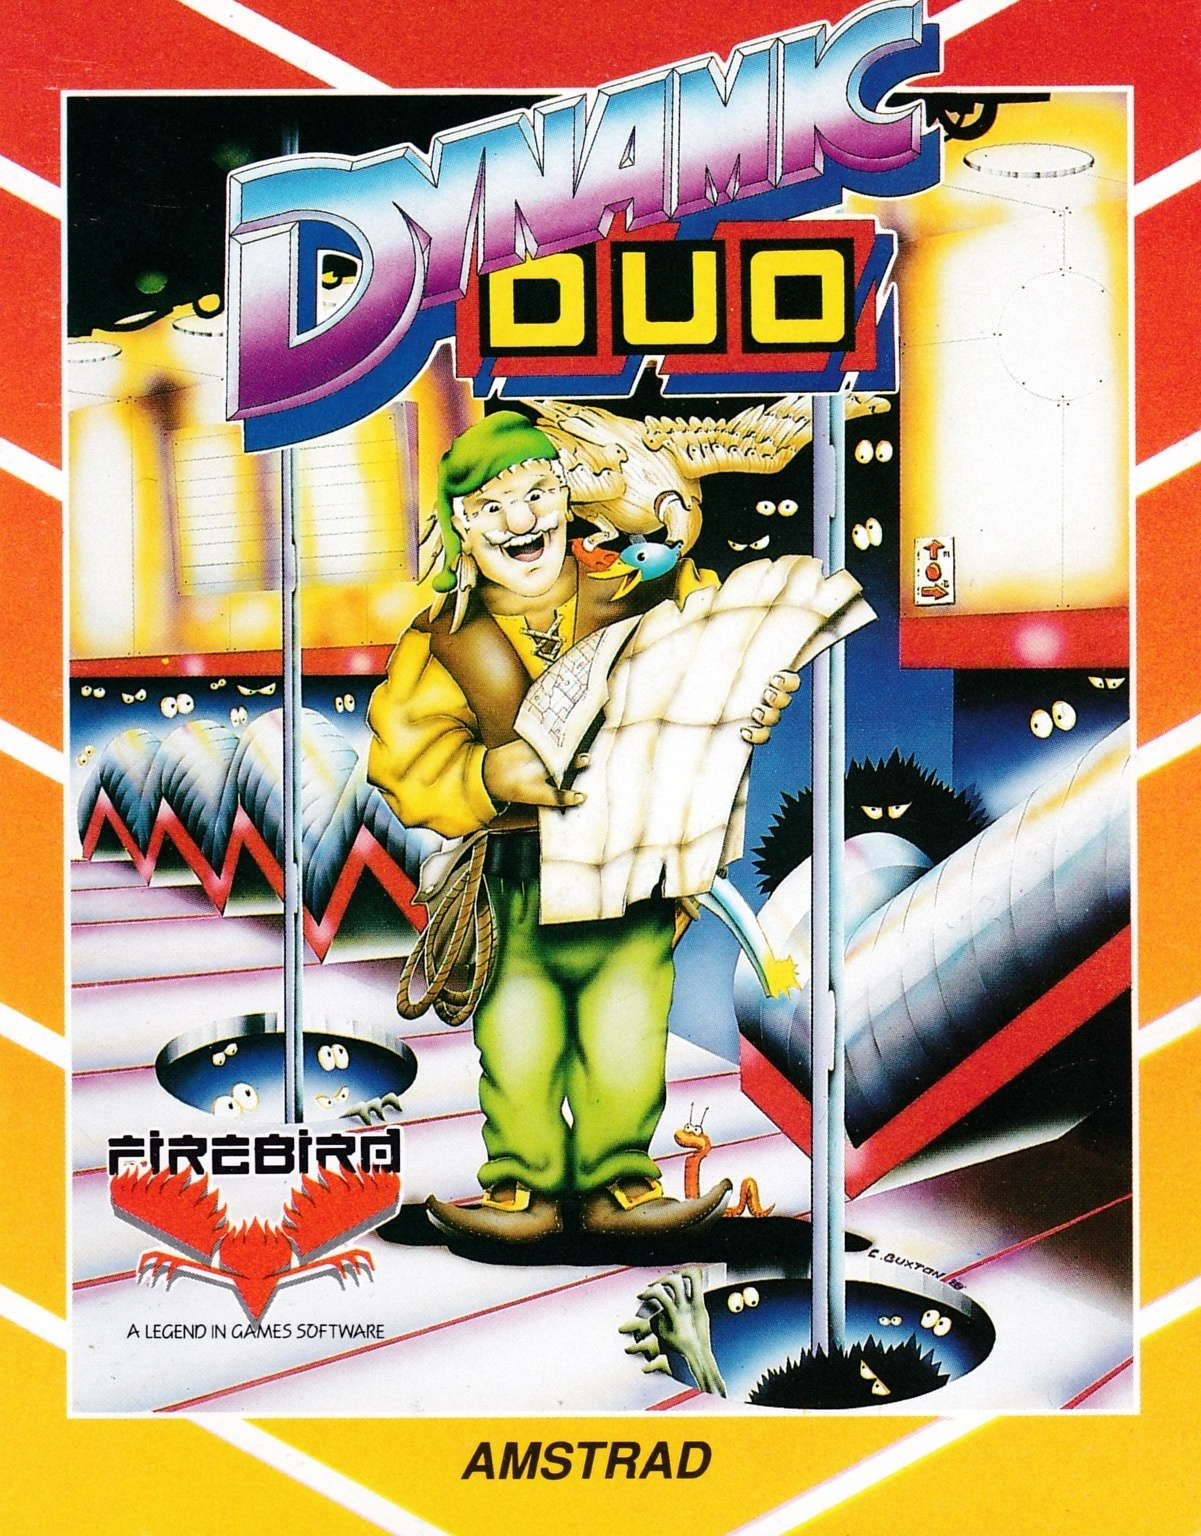 cover of the Amstrad CPC game Dynamic Duo  by GameBase CPC